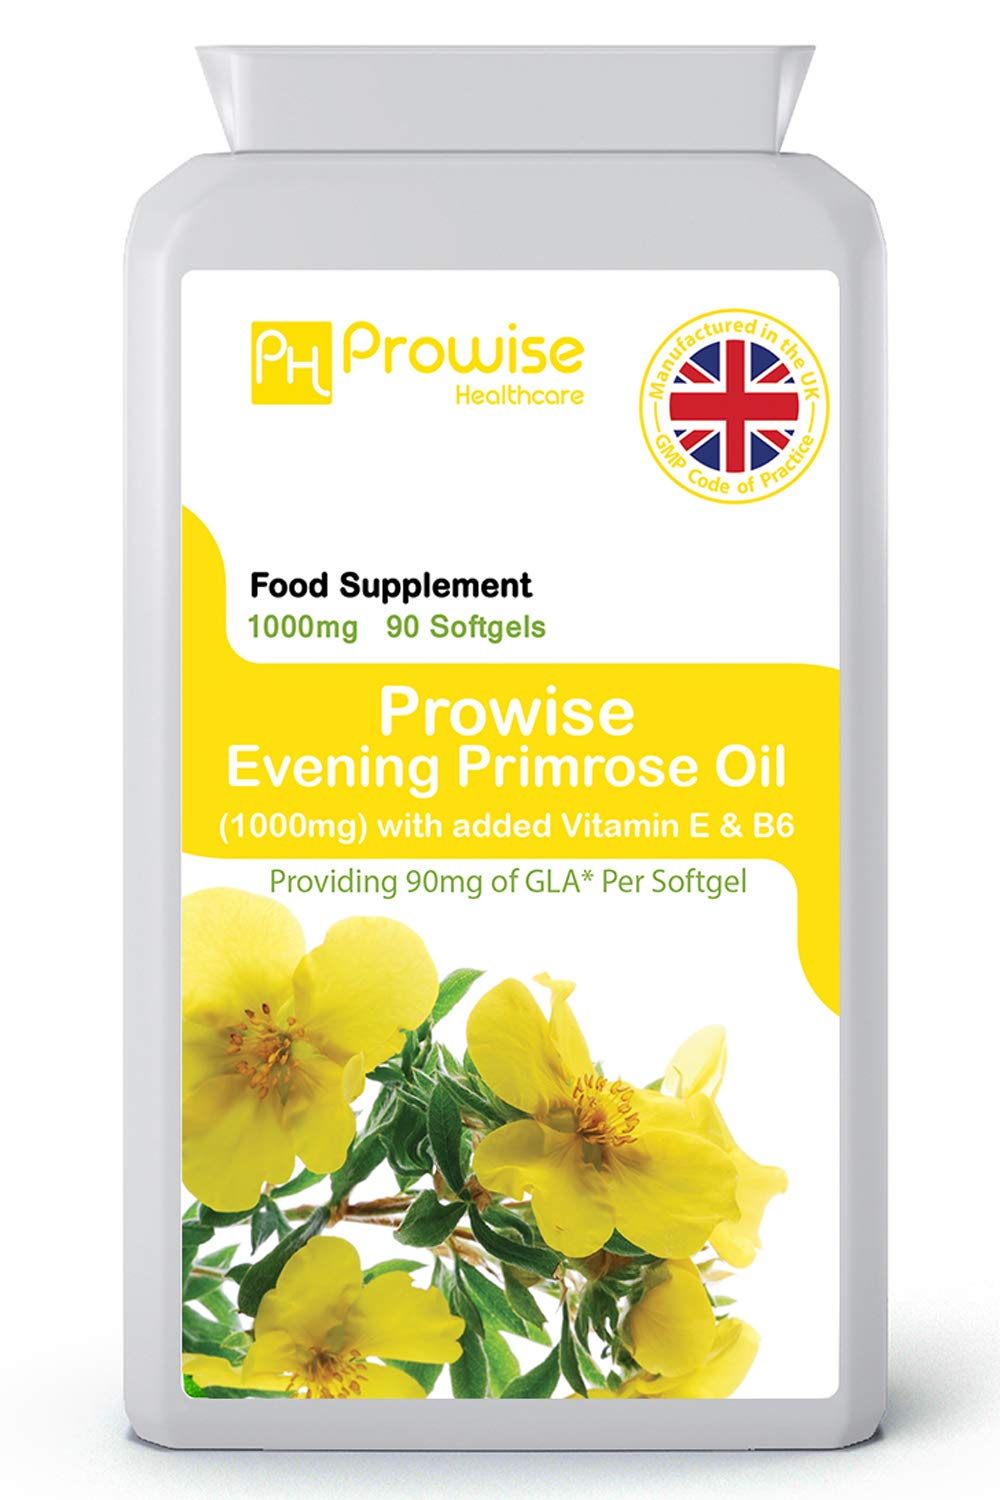 Evening Primrose Oil 1000mg Added with Vitamin E & B6 90 Softgels - UK Manufactured | GMP Standards by Prowise Healthcare